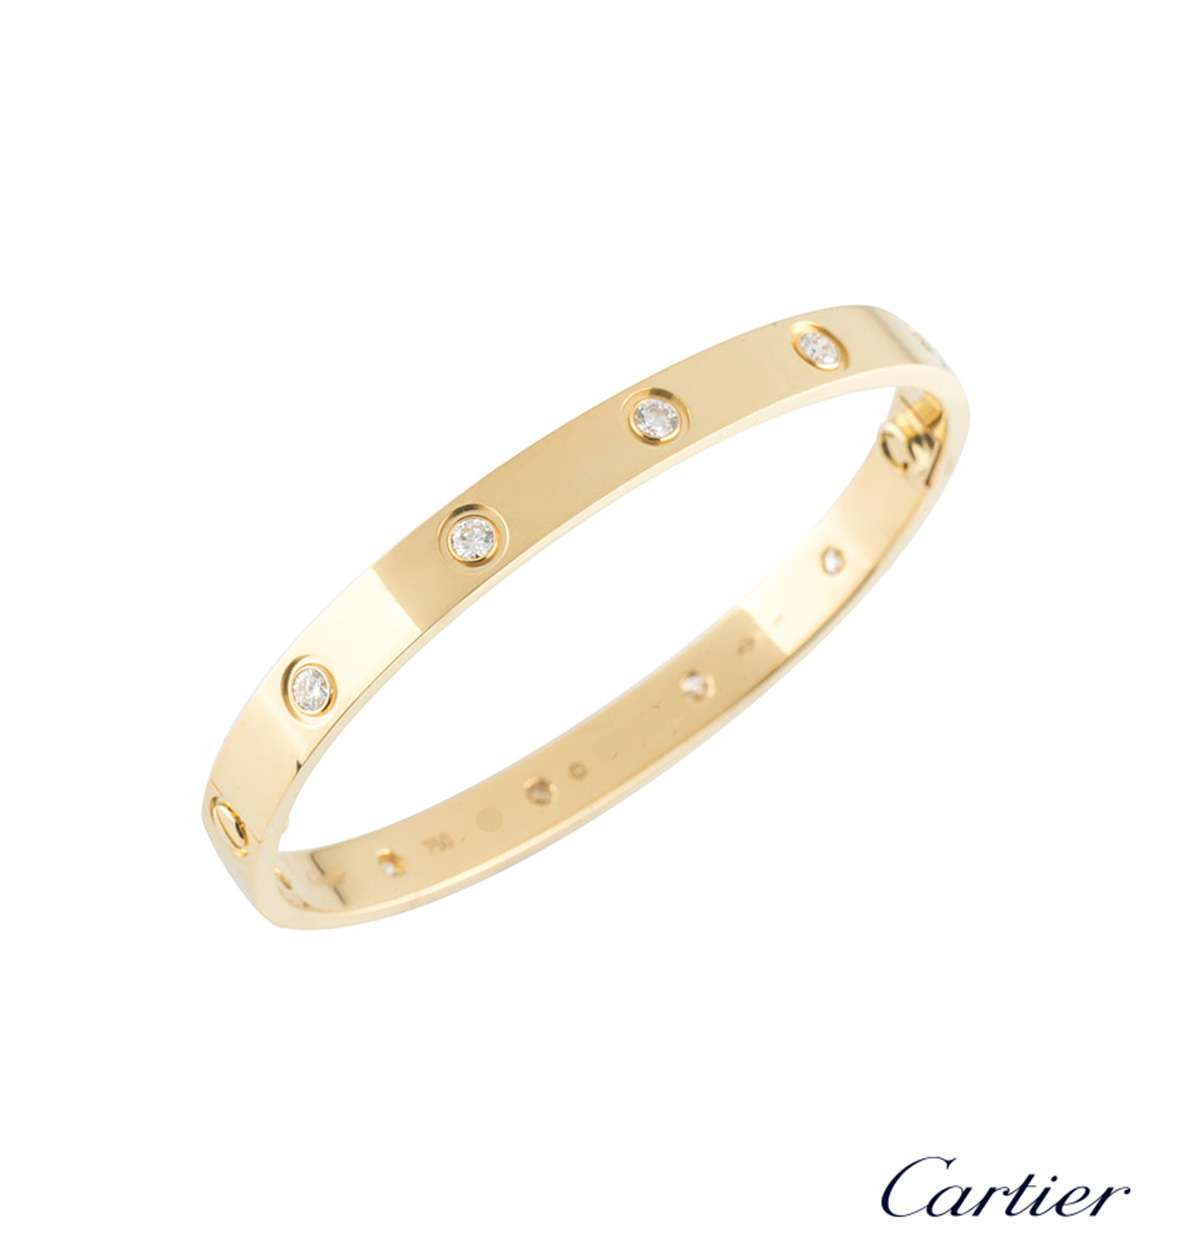 Cartier Yellow Gold Full Diamond Love Bracelet Size 17 B6040517